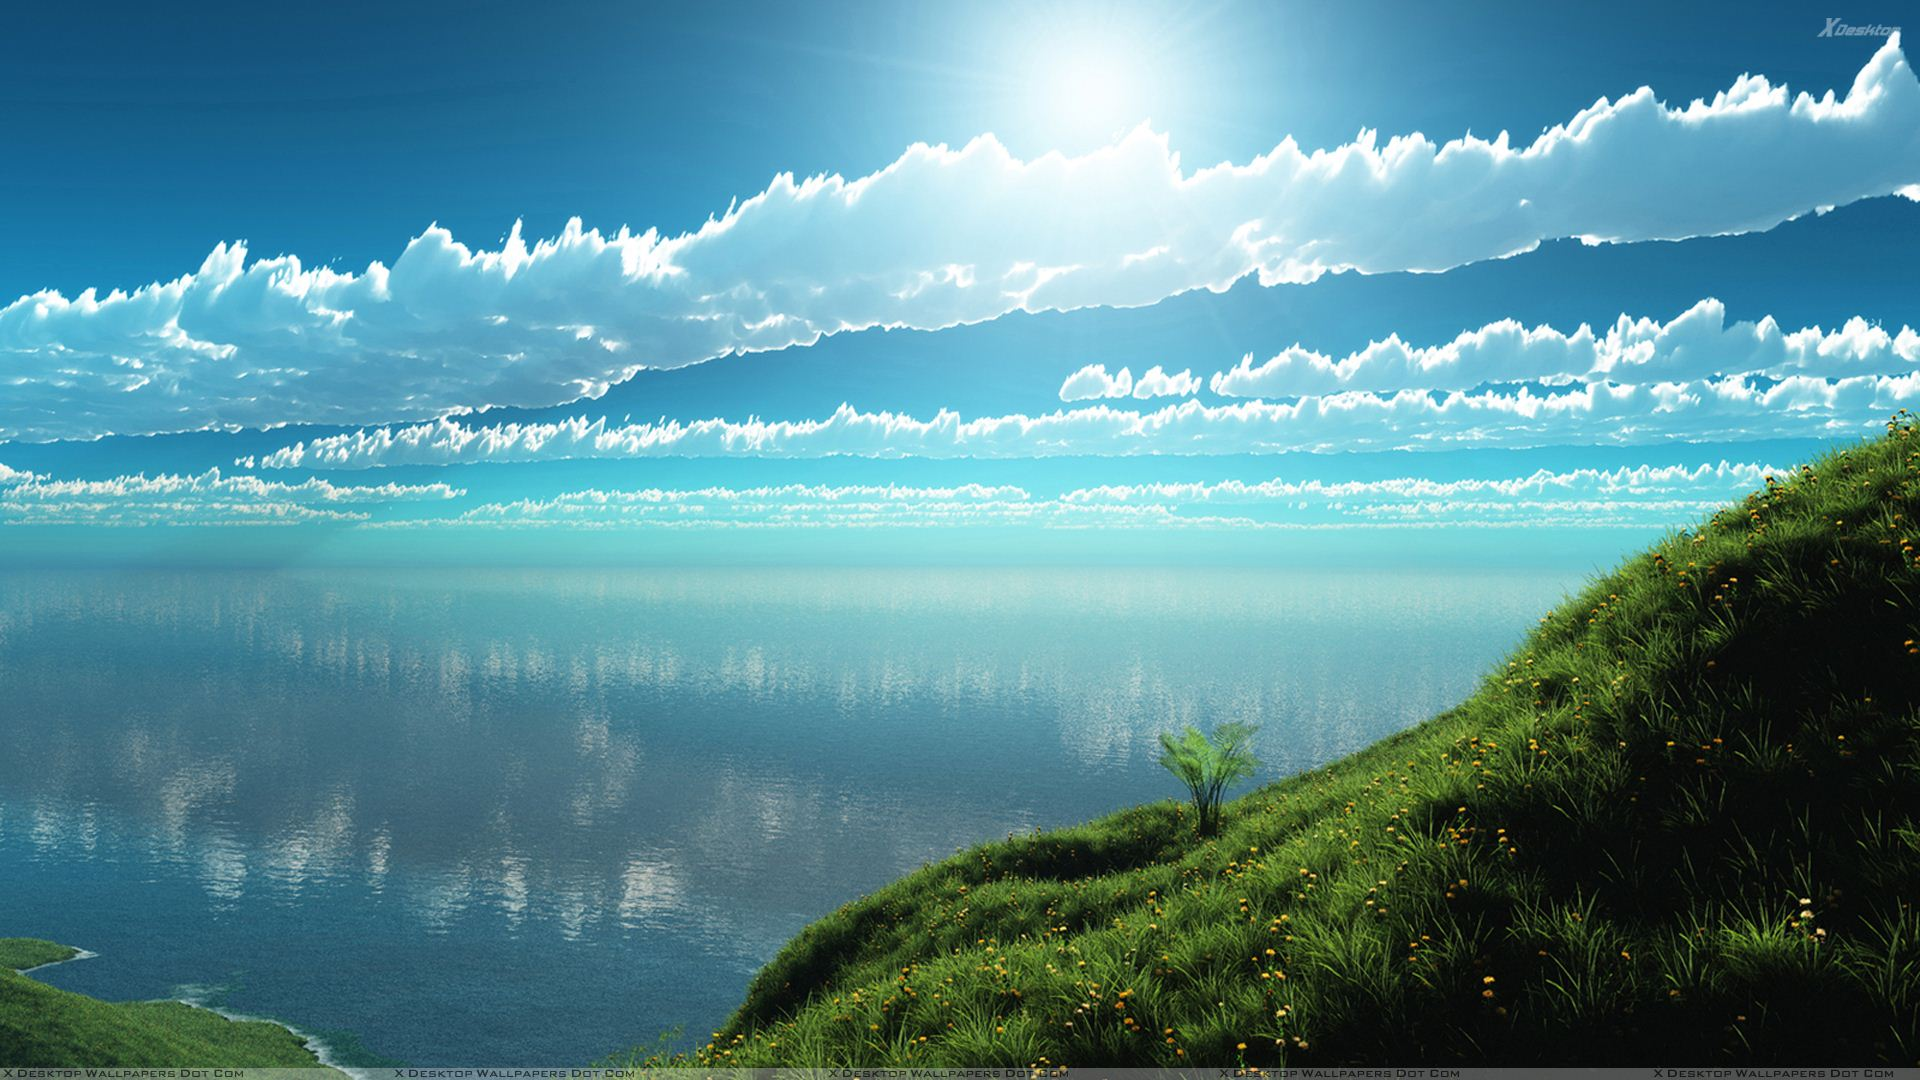 Beautiful Morning Scene Near Sea Wallpaper